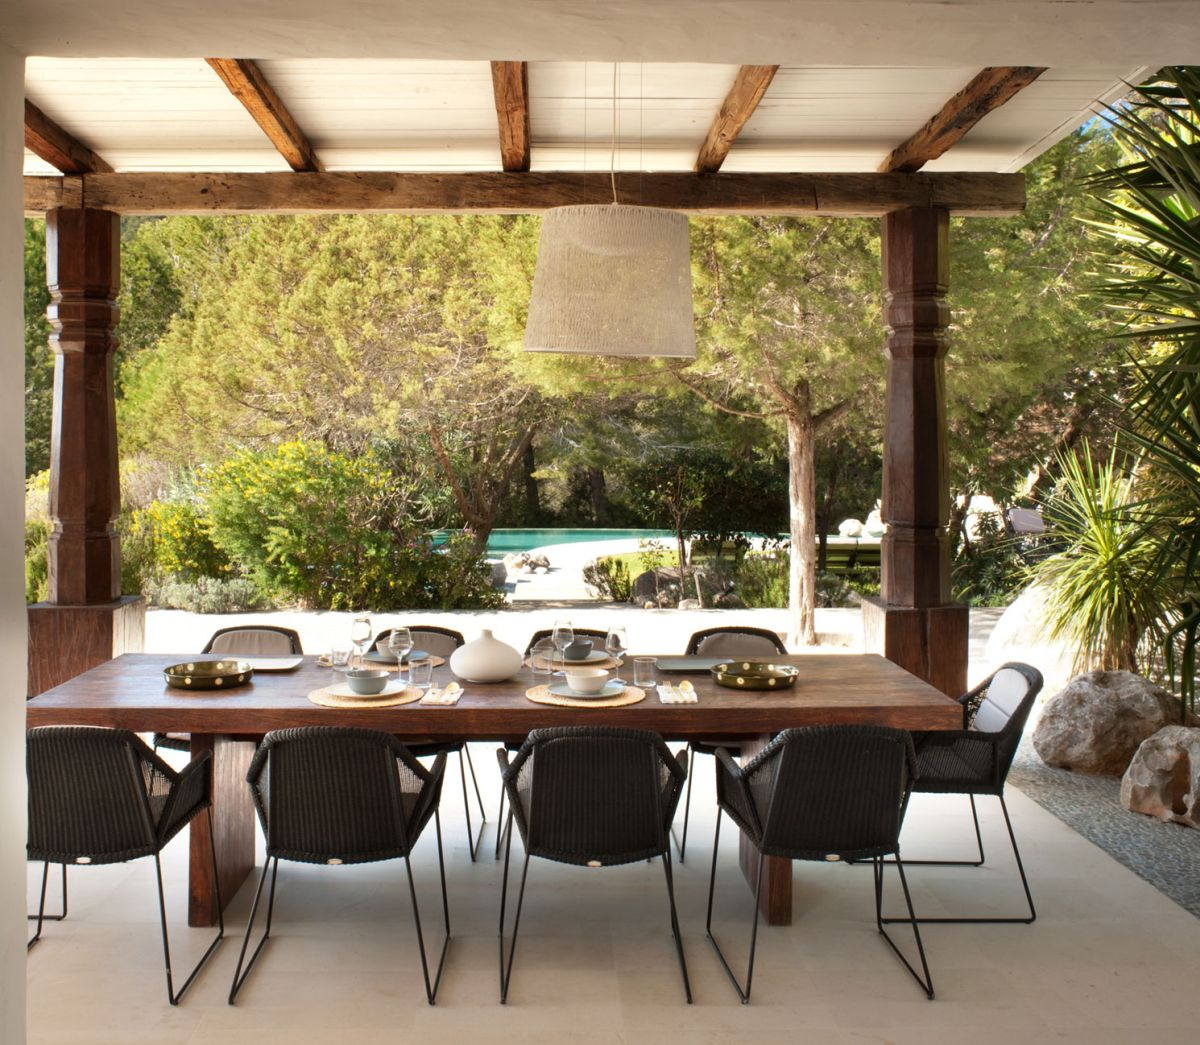 Modern Ibiza home by TG Studio - outdoor dining table